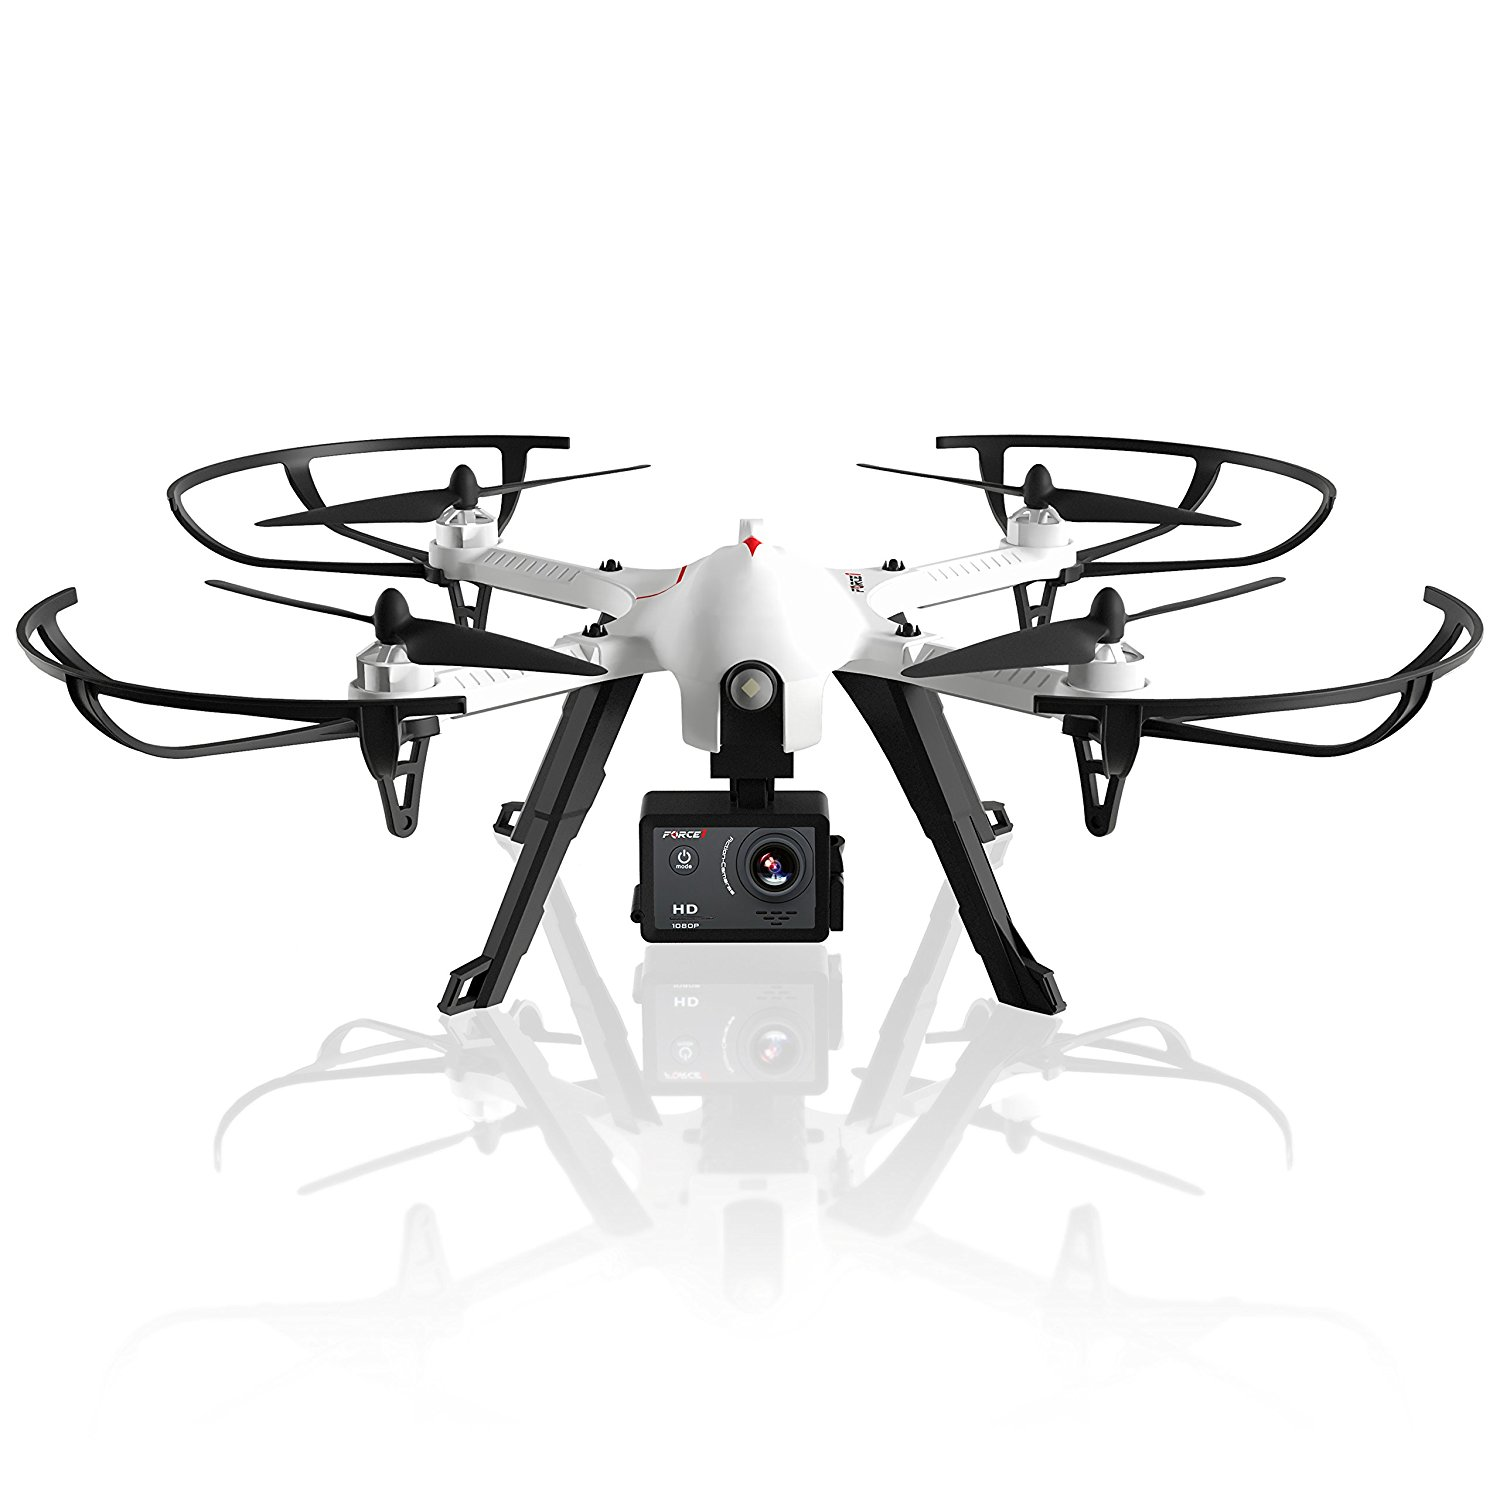 Us F100 Ghost Rc Quadcopter Drone With 1080p Hd Camera For Men